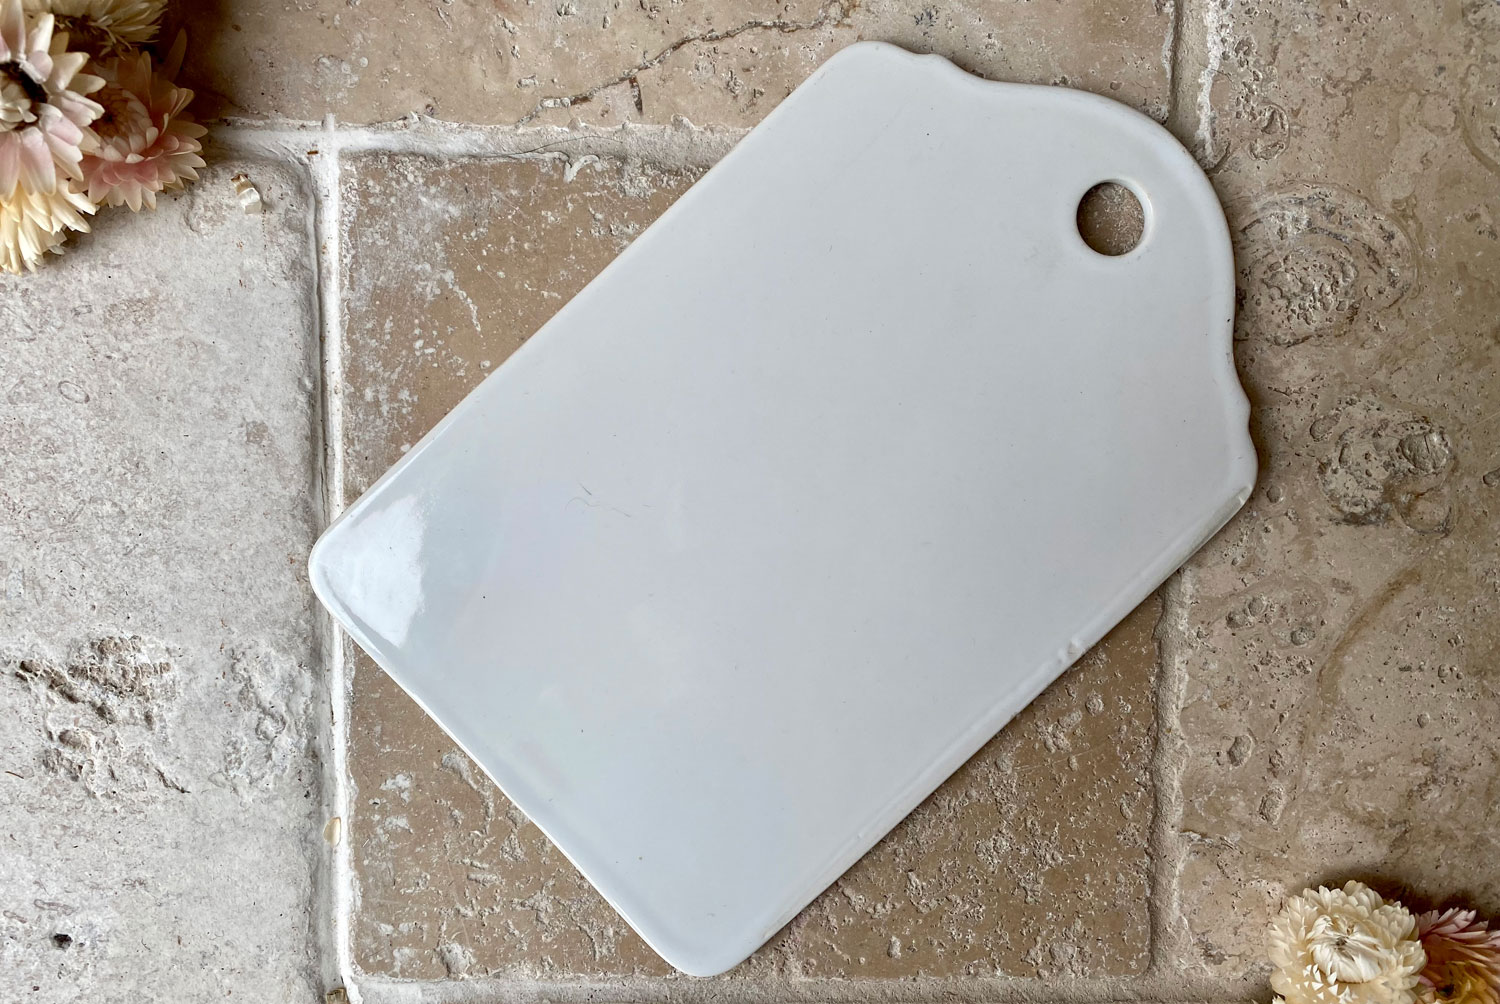 antique early 20th century french plain white ironstone onion cutting board